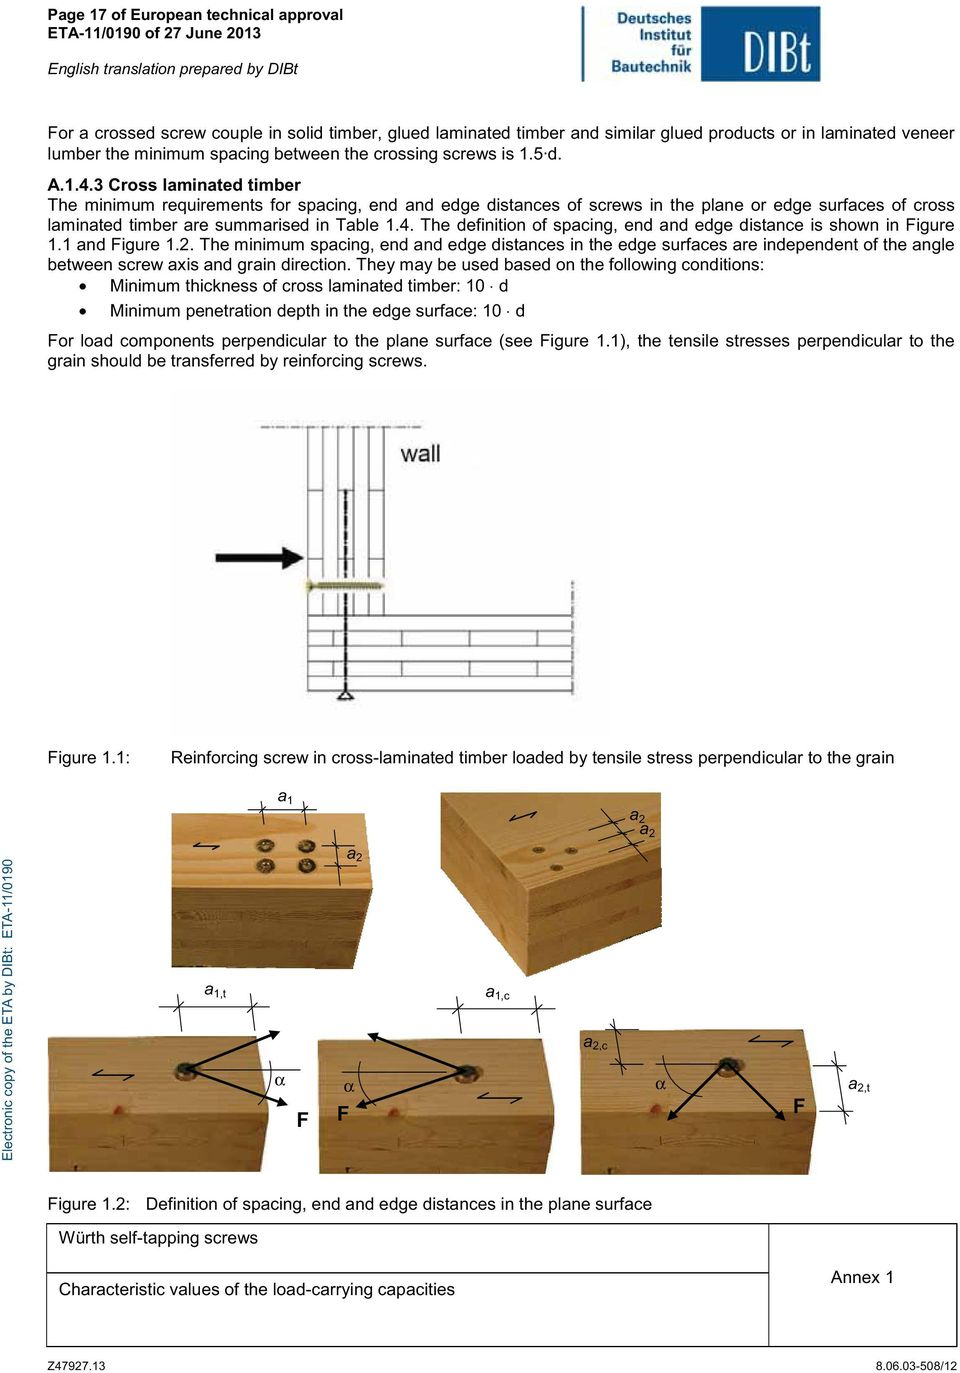 3 Cross laminated timber The minimum requirements for spacing, end and edge distances of screws in the plane or edge surfaces of cross laminated timber are summarised in Table 1.4.